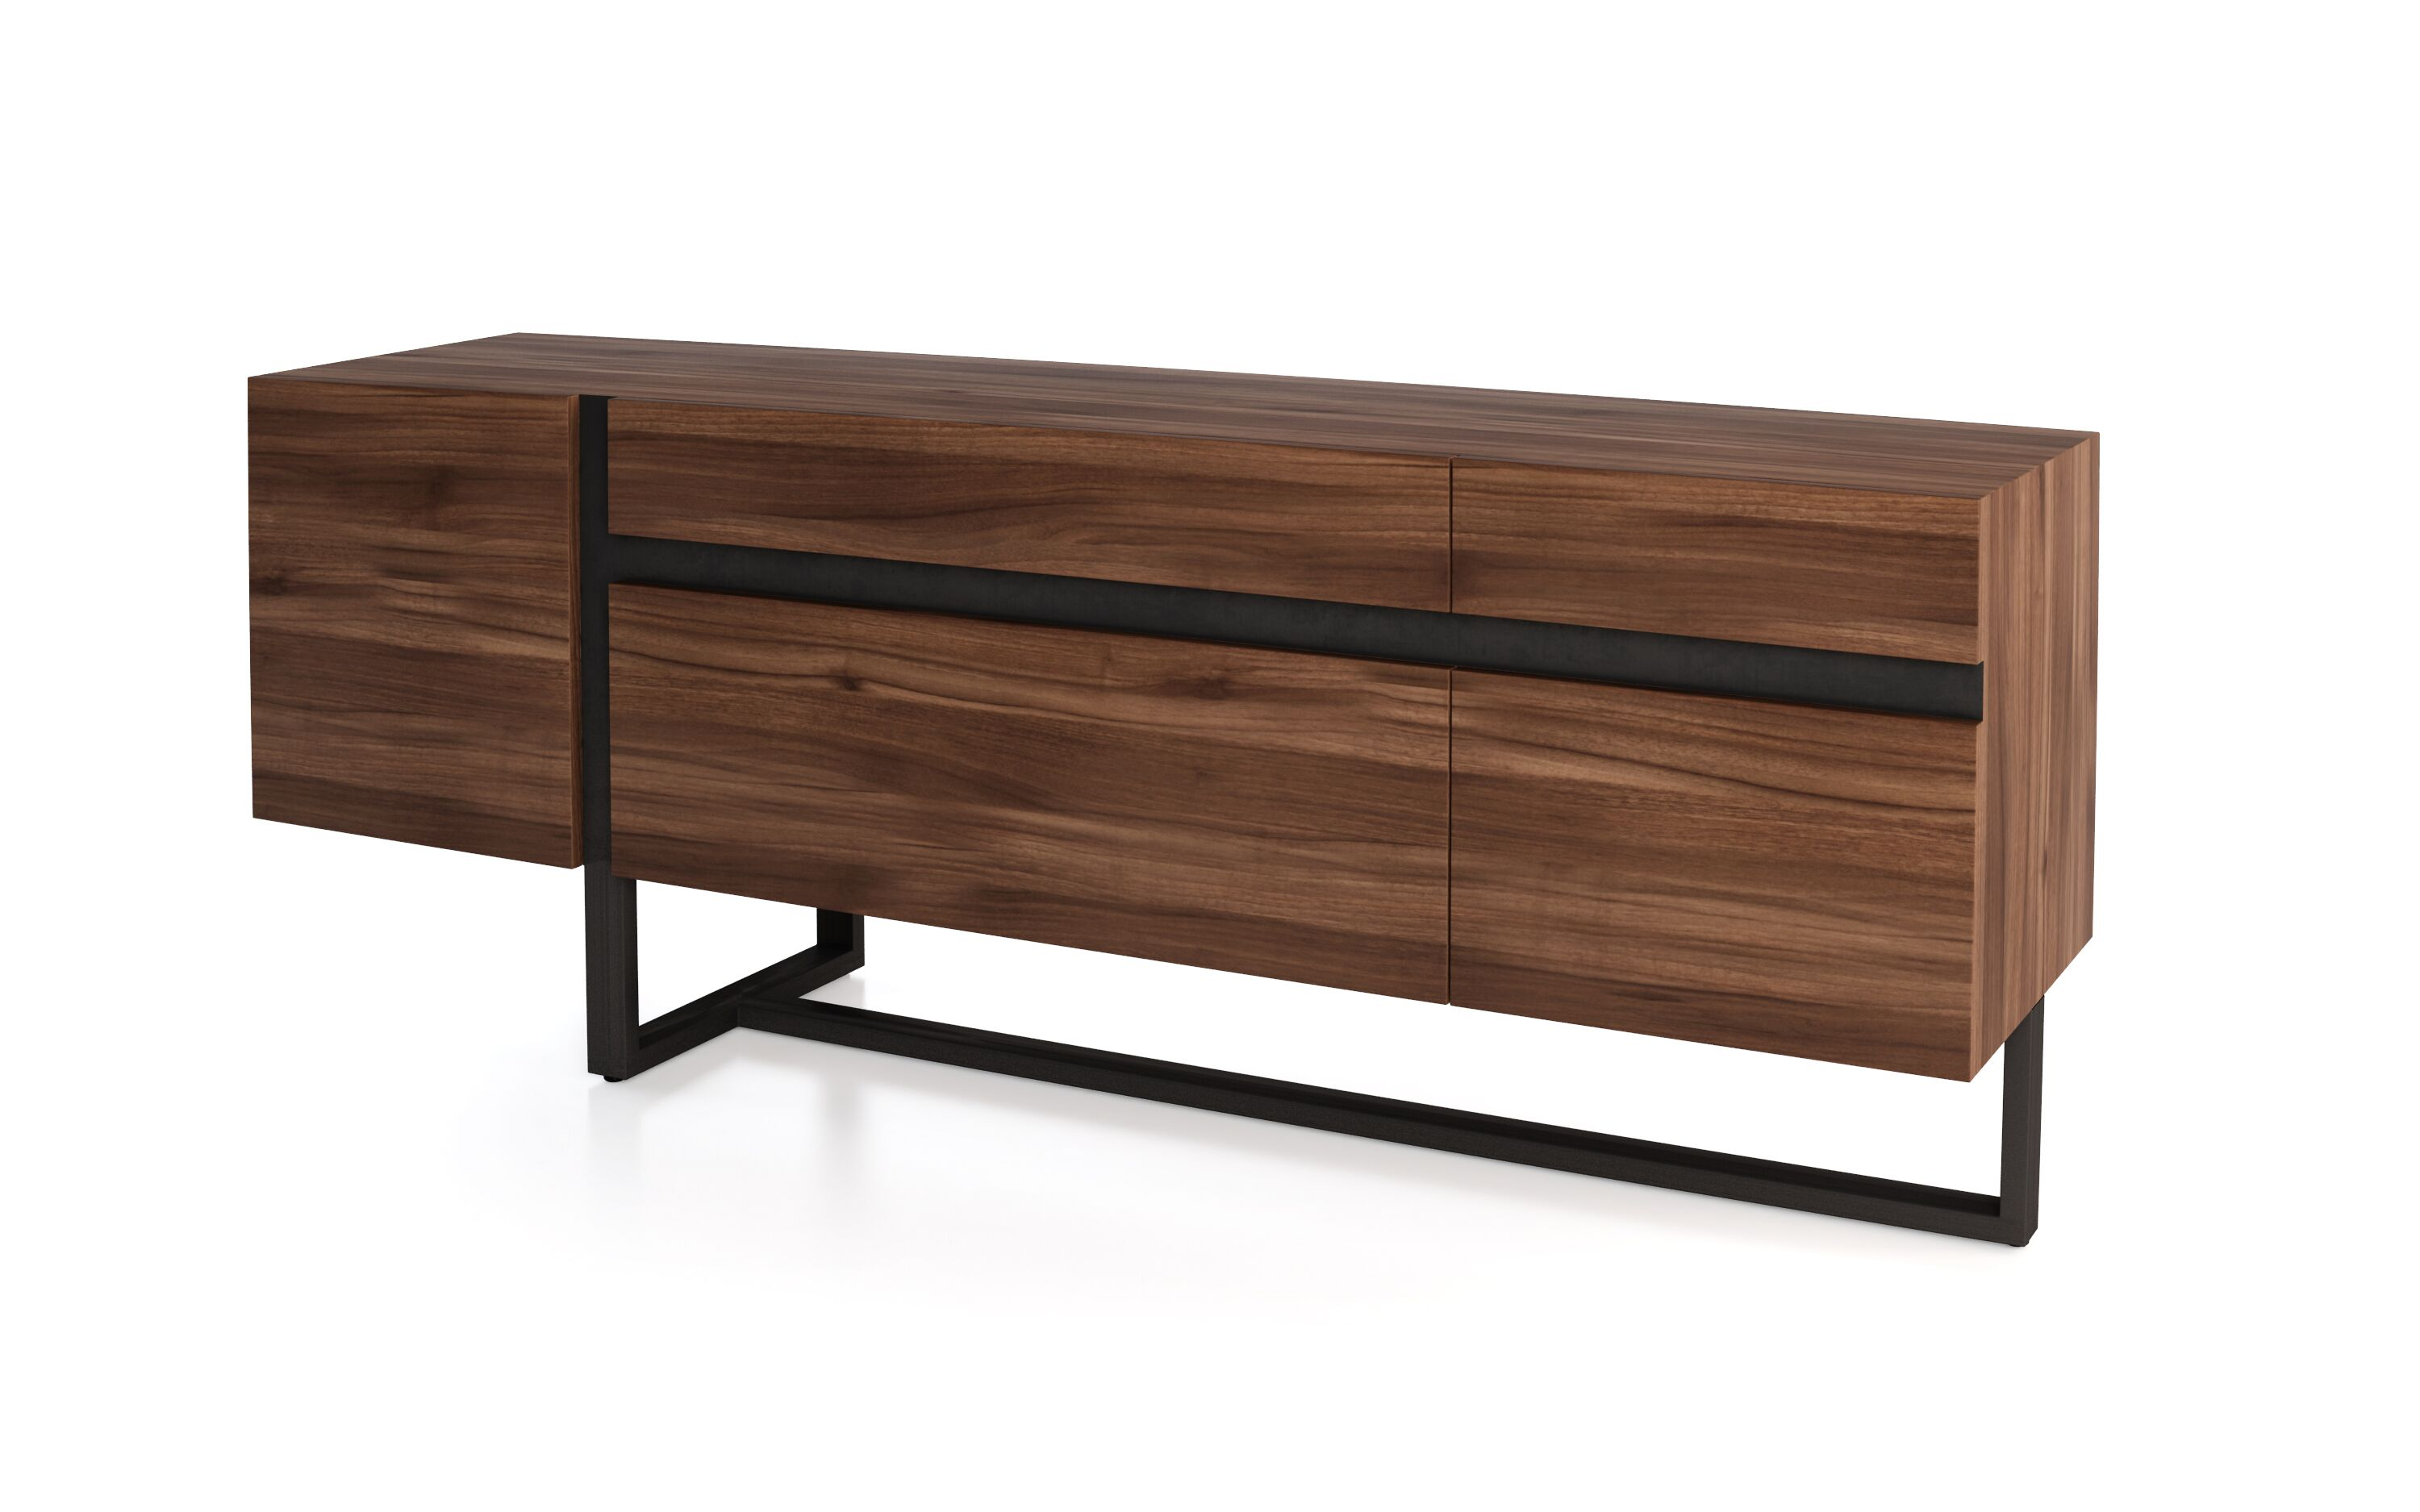 AXION SIDEBOARD